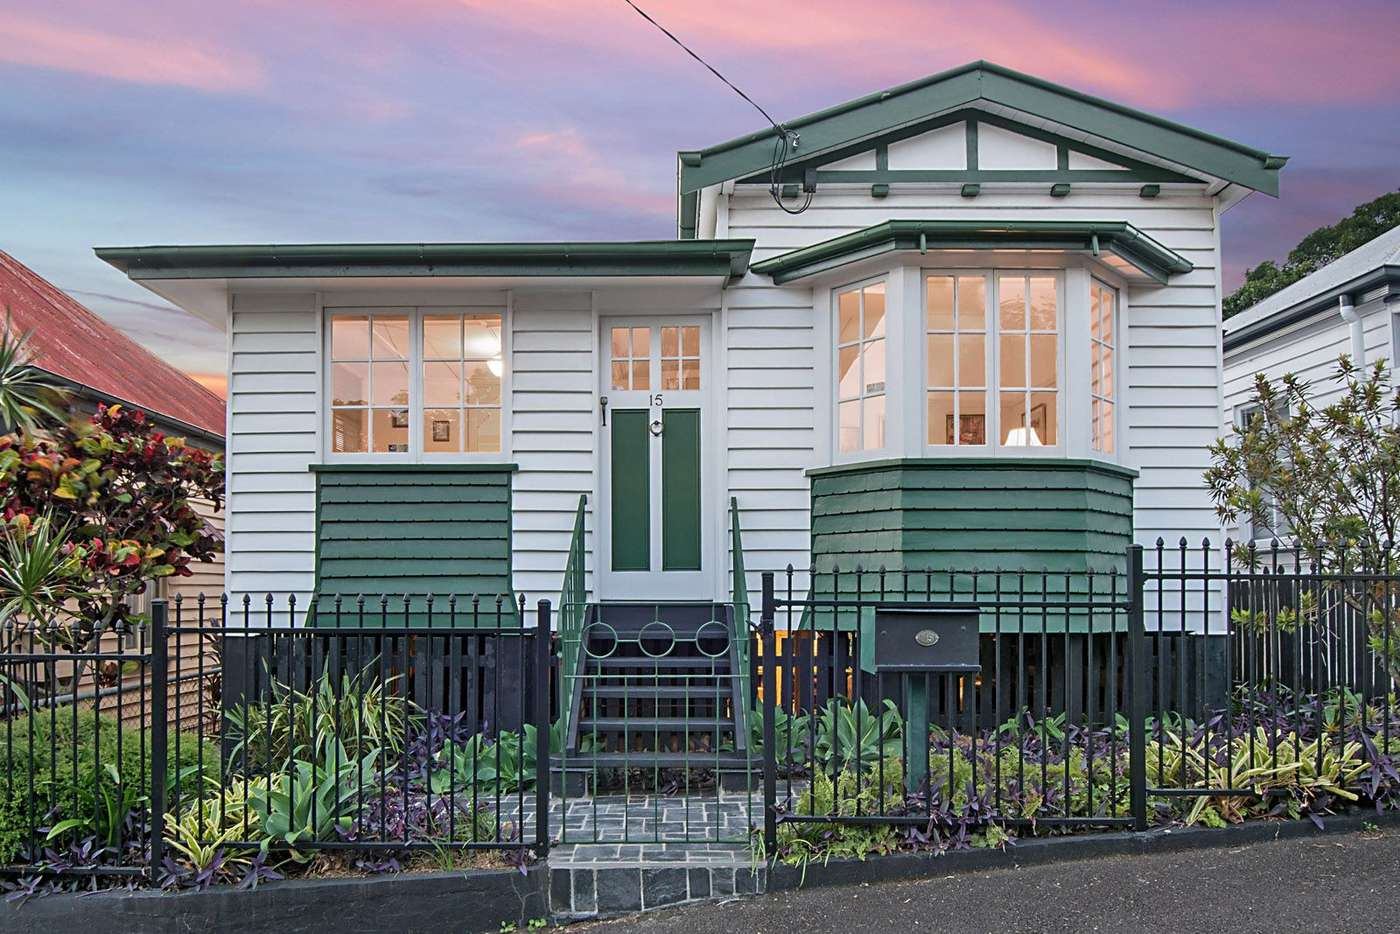 Main view of Homely house listing, 15 Belgrave Street, Petrie Terrace QLD 4000